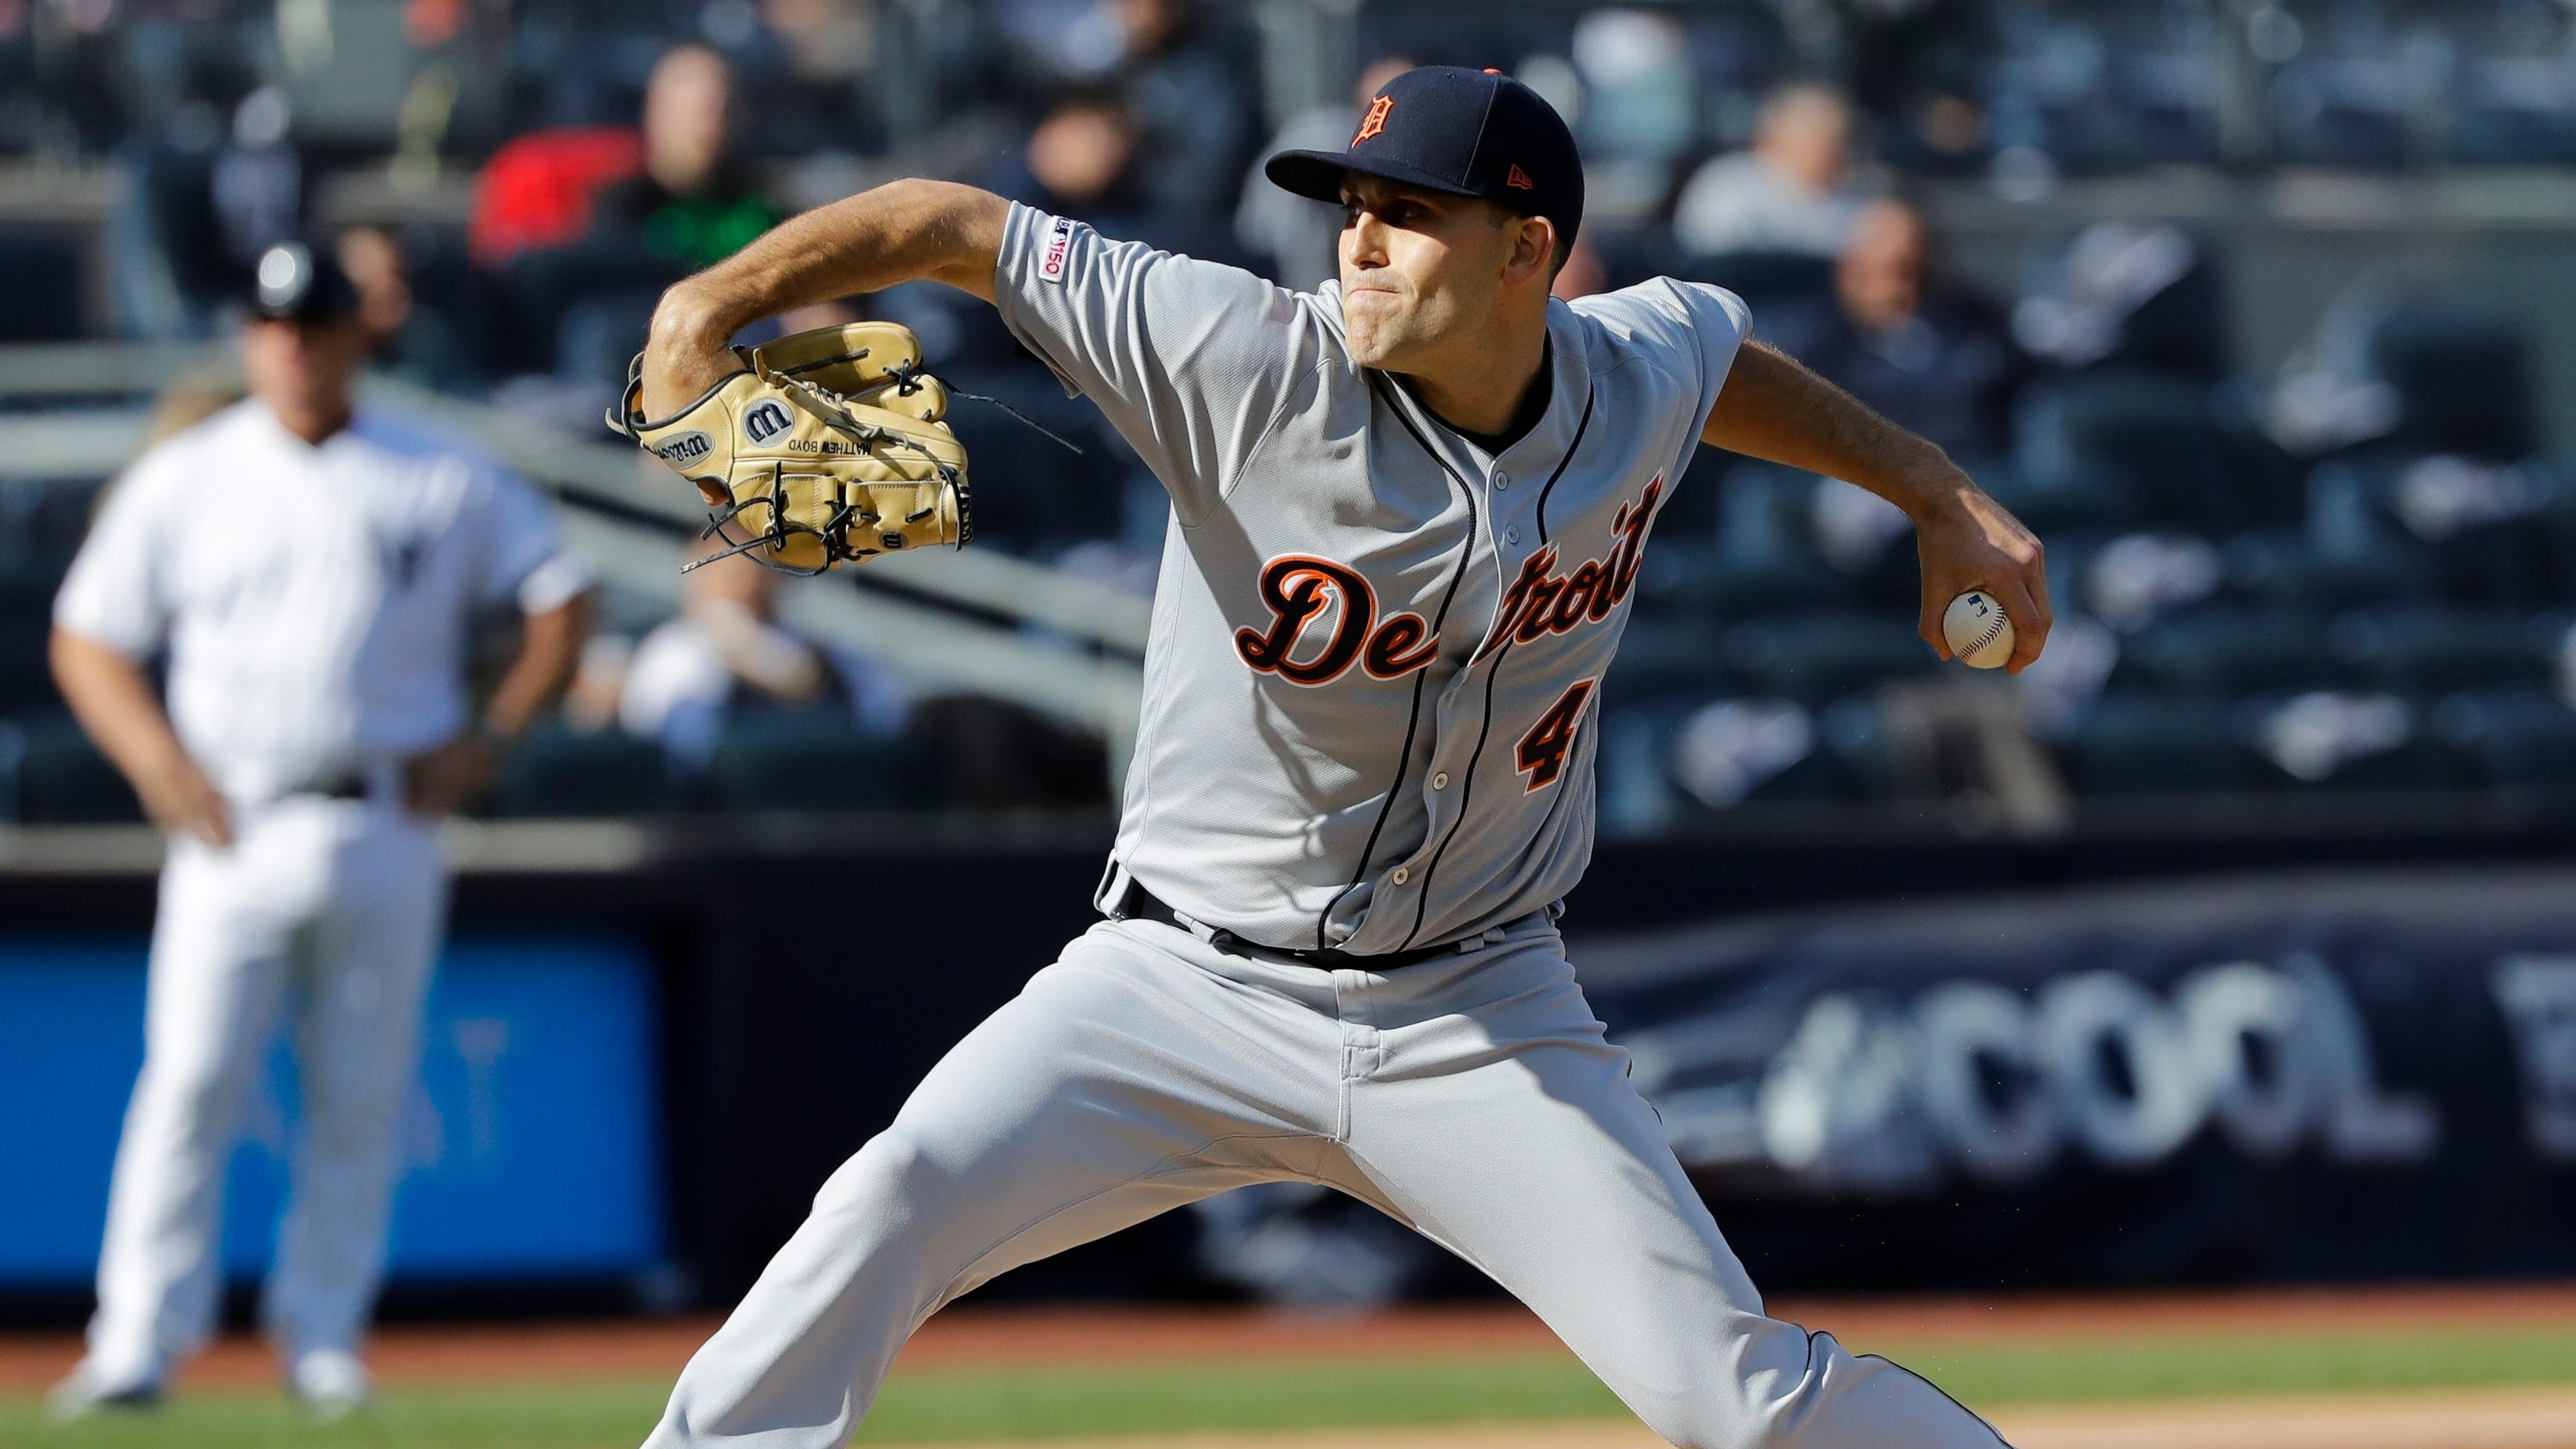 Detroit Tigers vs. New York Yankees: Photos from the BronxYankees